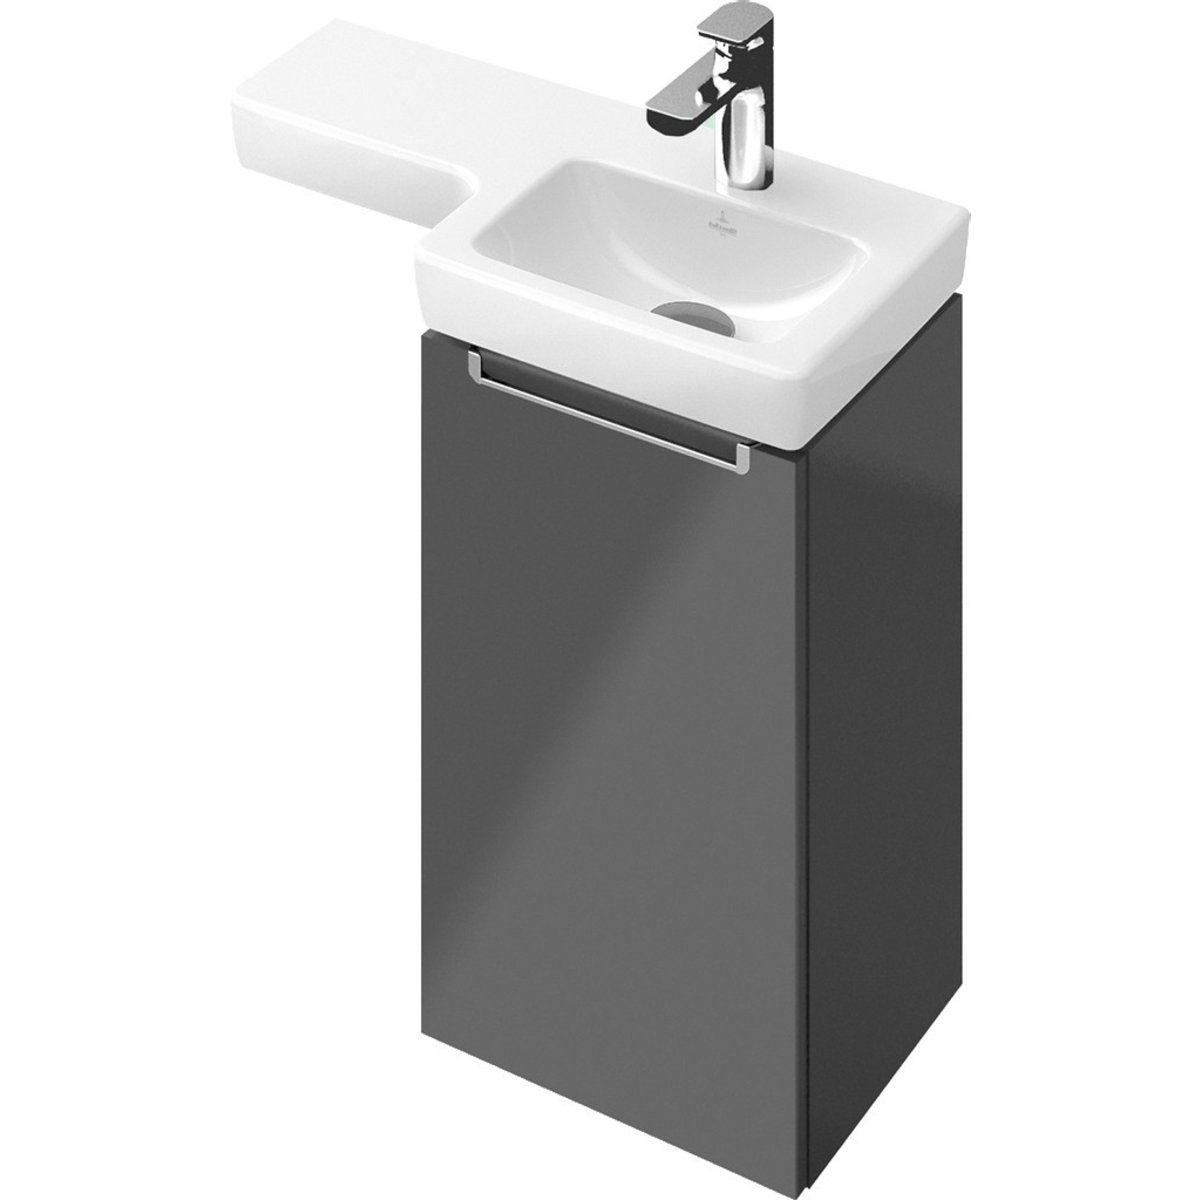 Villeroy boch subway 2 0 meuble sous lavabo for Meuble subway villeroy et boch